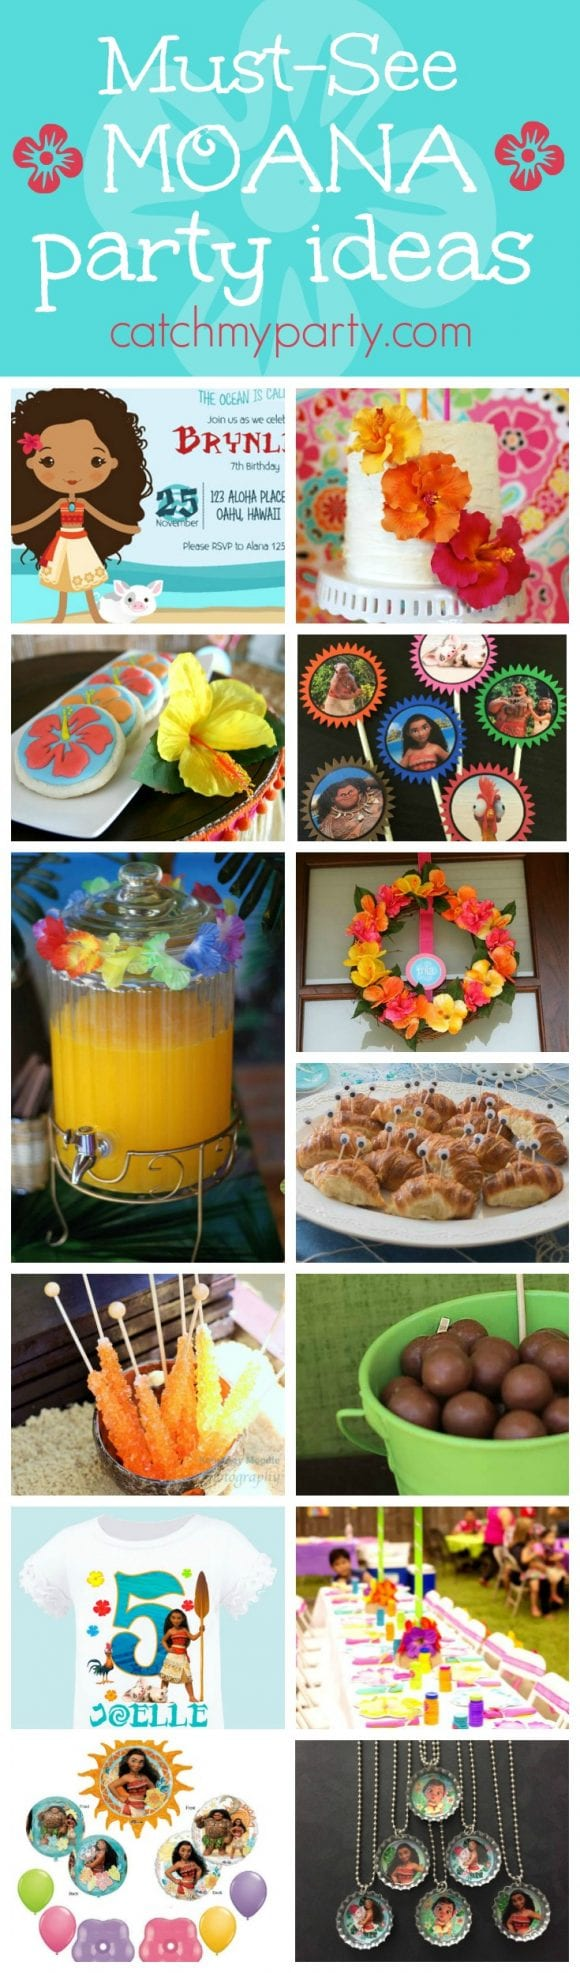 Must-see Moana party ideas | CatchMyParty.com